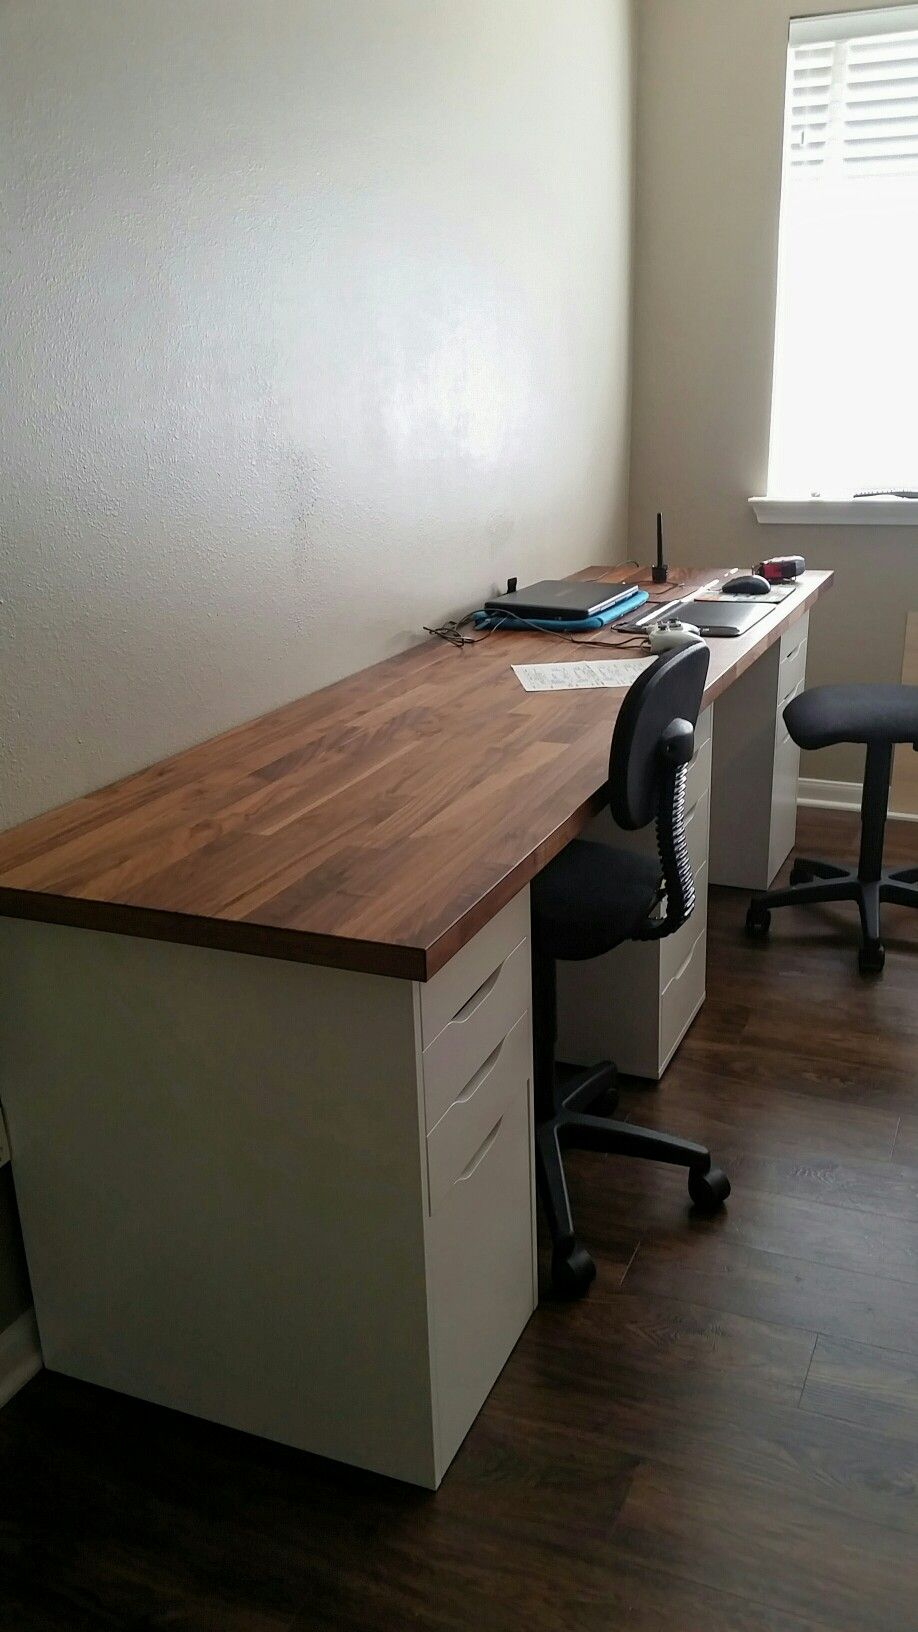 Ikea Home Filing System Desk In Craft Room Is 98